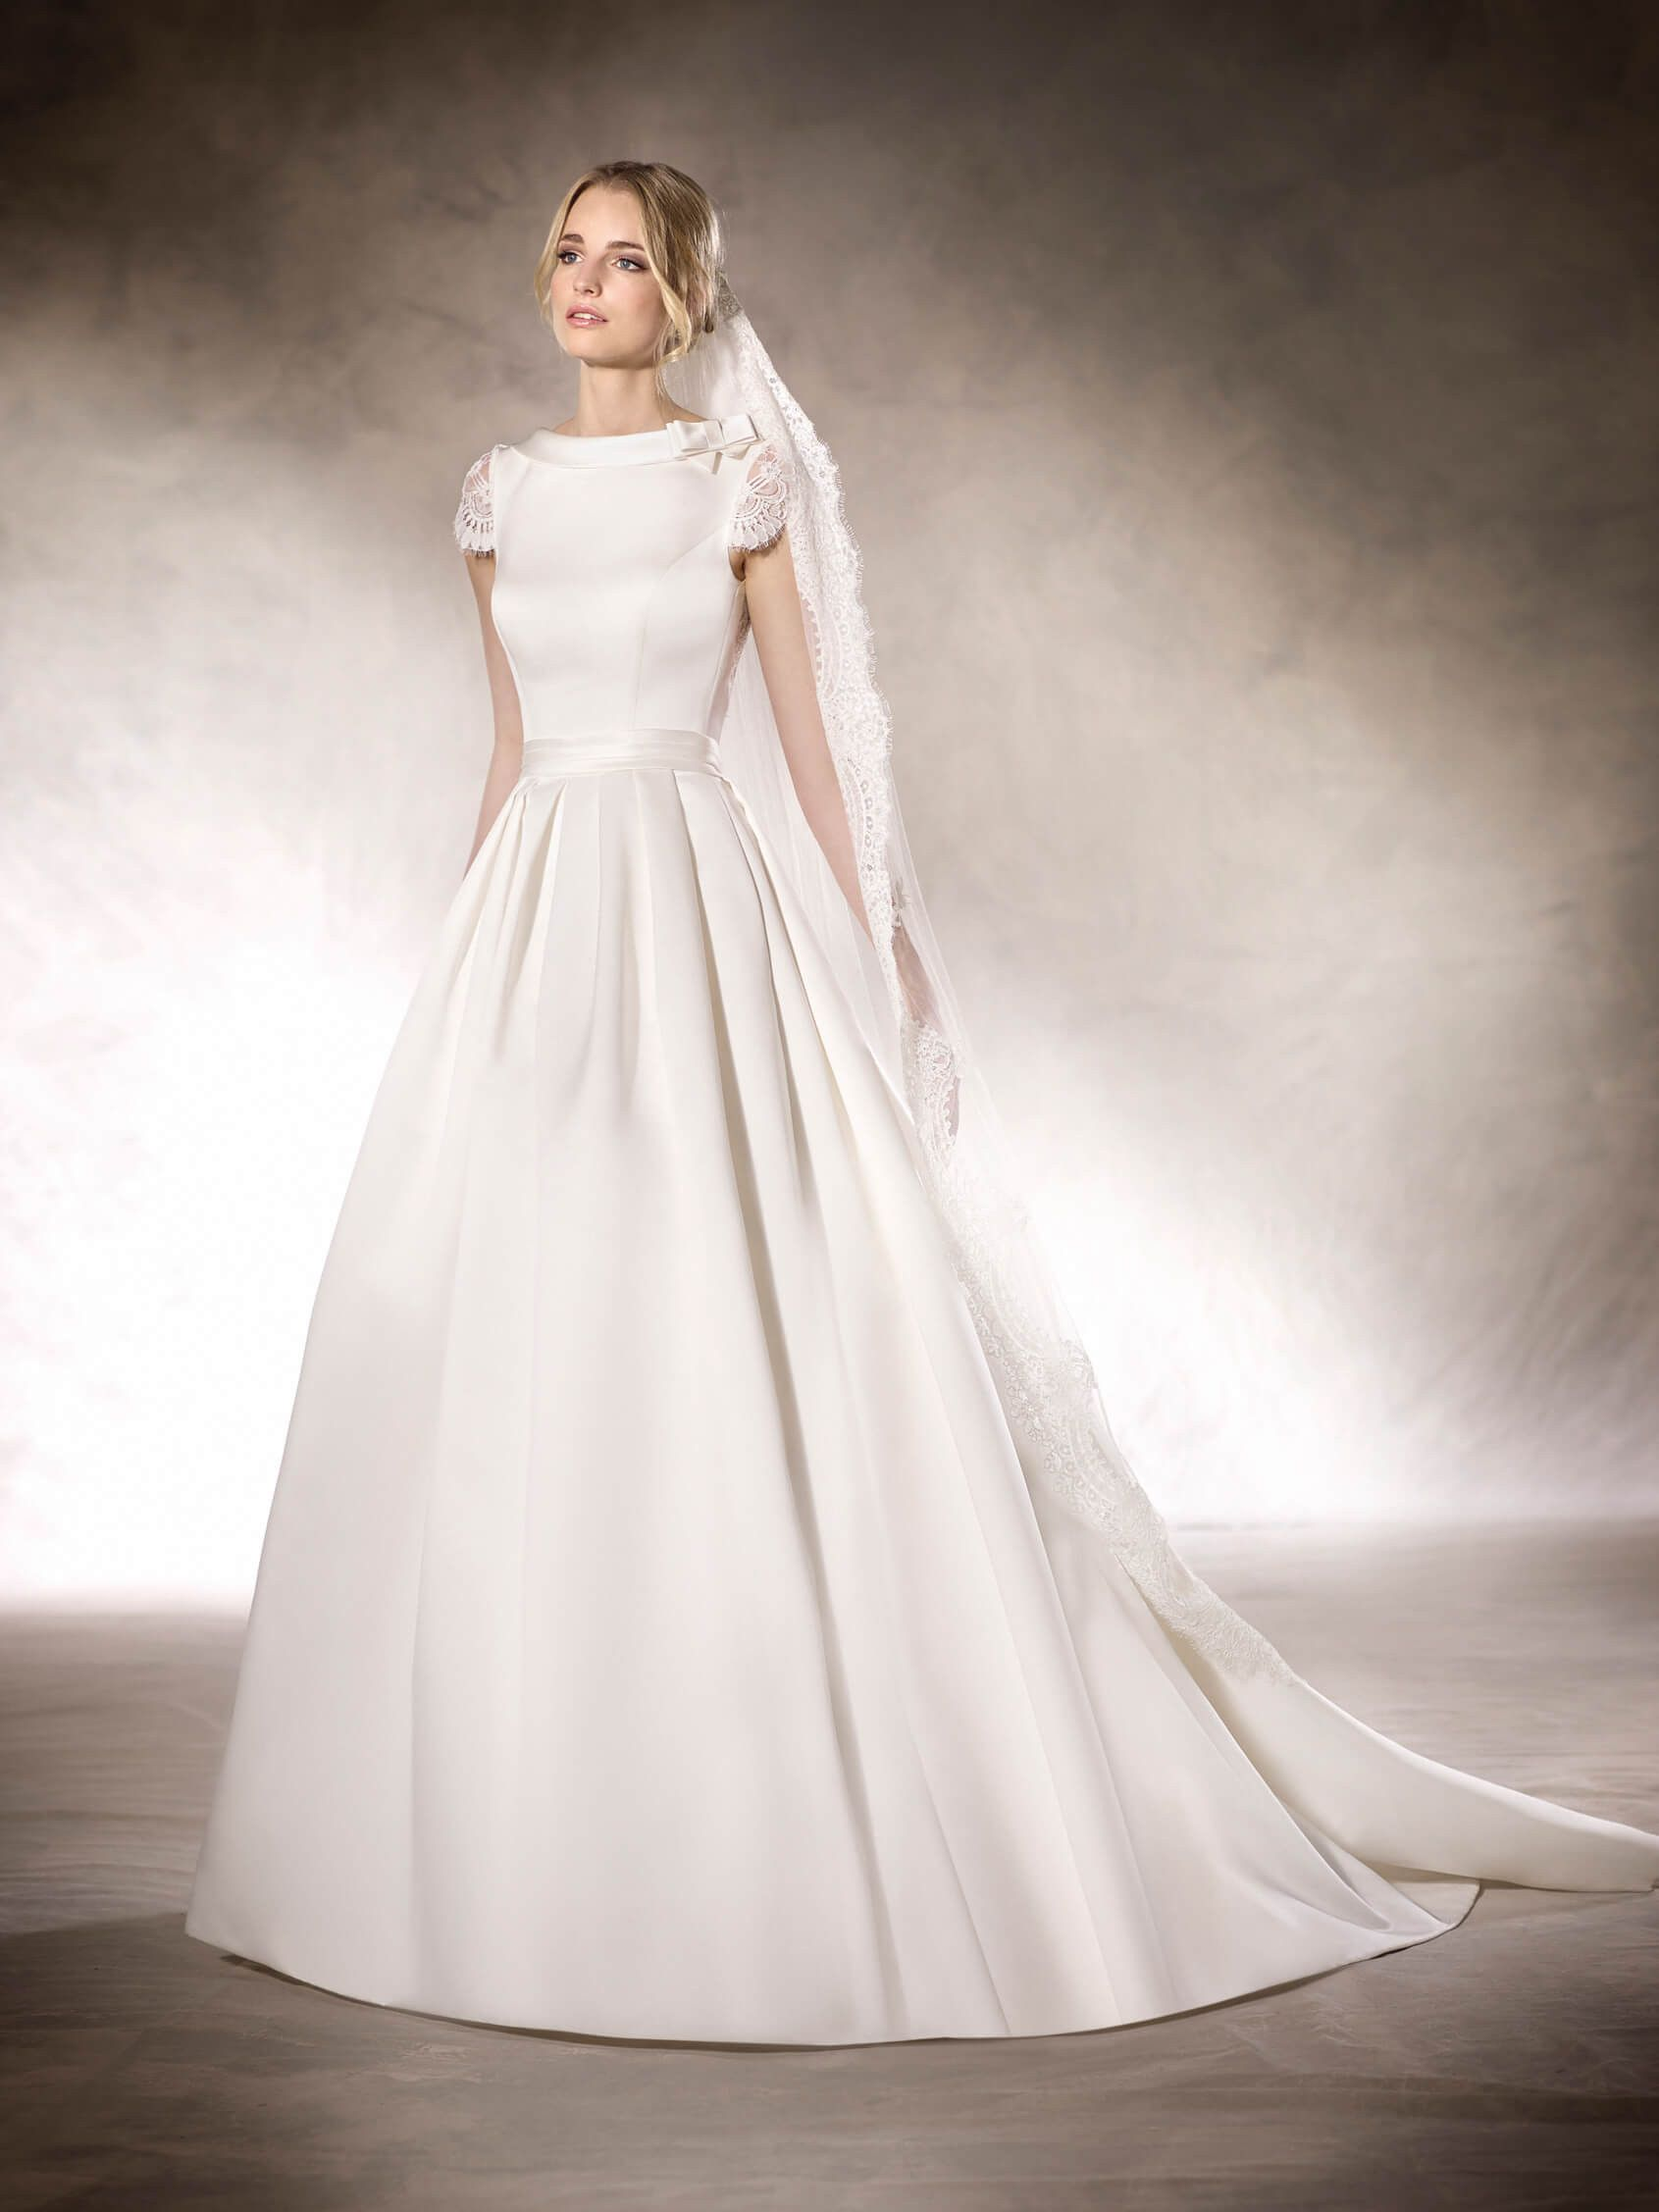 HATIE is an unforgettable princess wedding dress with a bateau ...